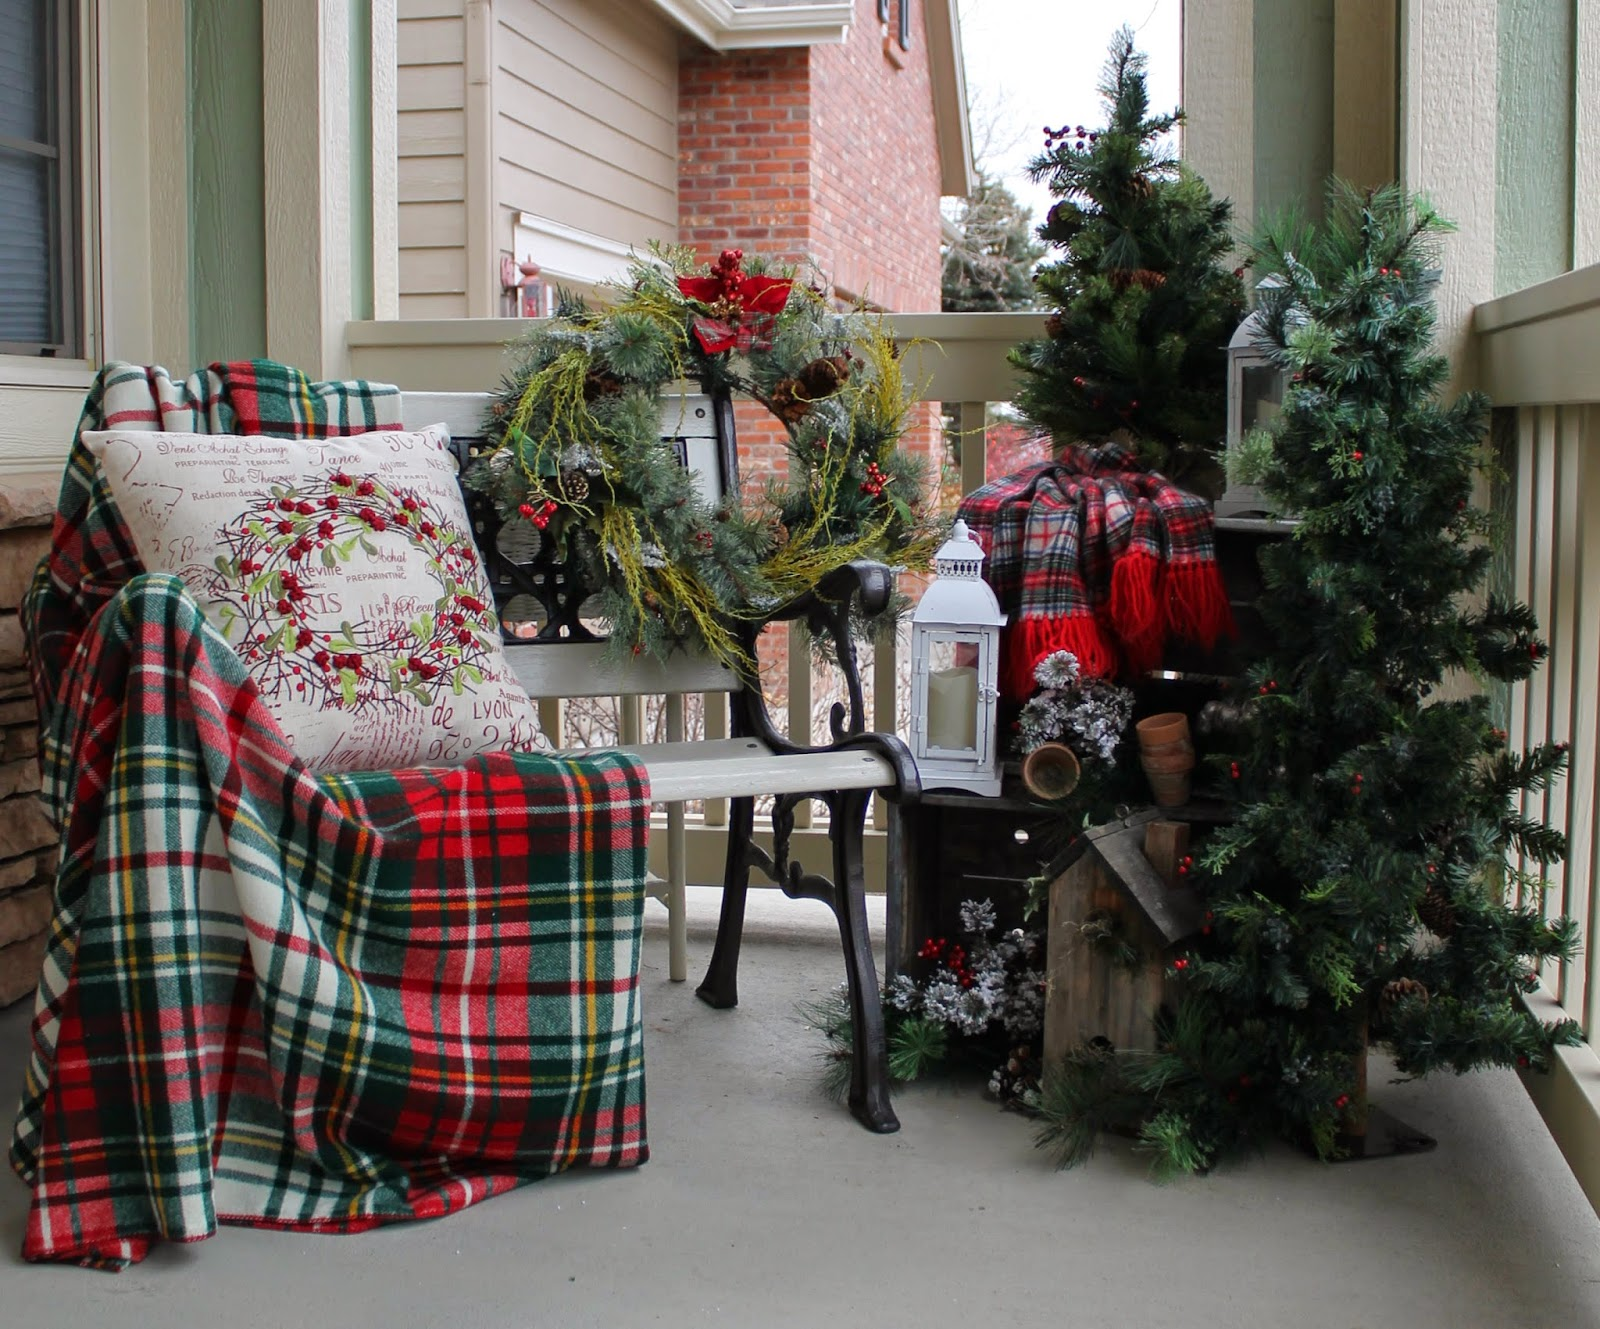 holiday welcome bench - Outdoor Christmas Decorations Ideas Pinterest